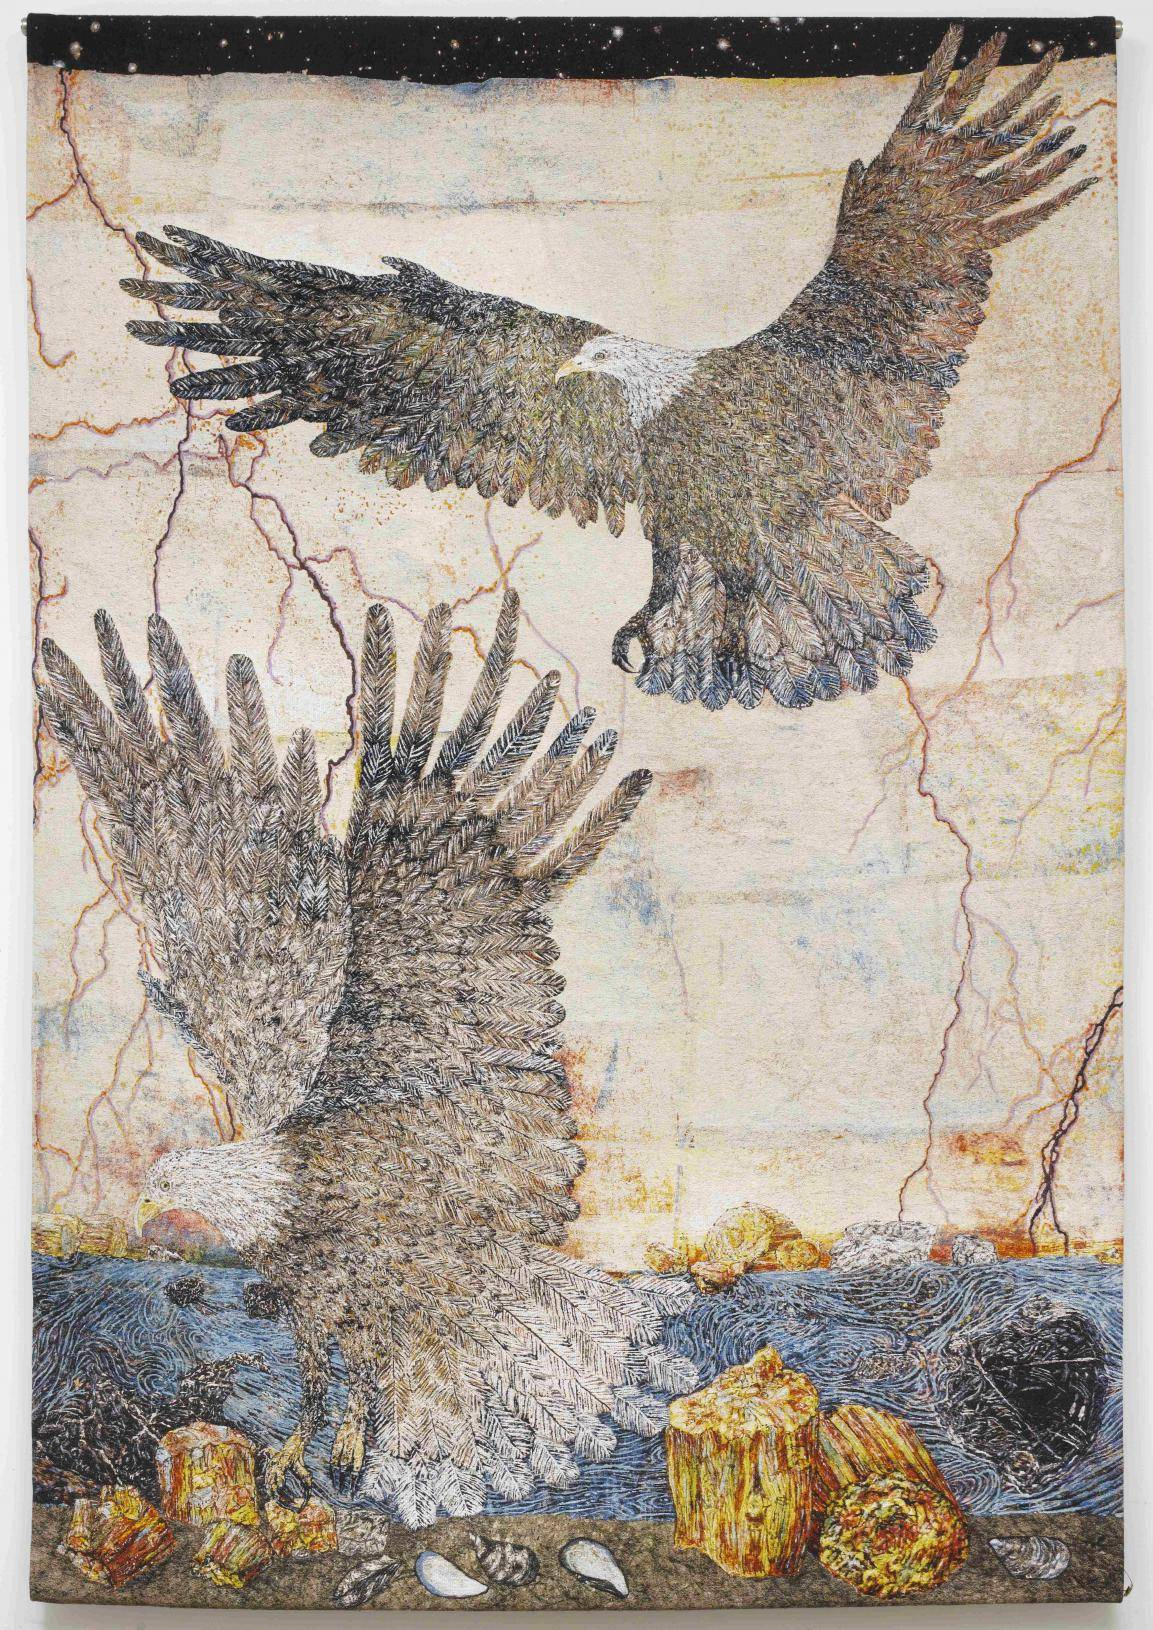 Kiki Smith, Guide Courtesy of the artist and Barbara Gross Galerie, Munich